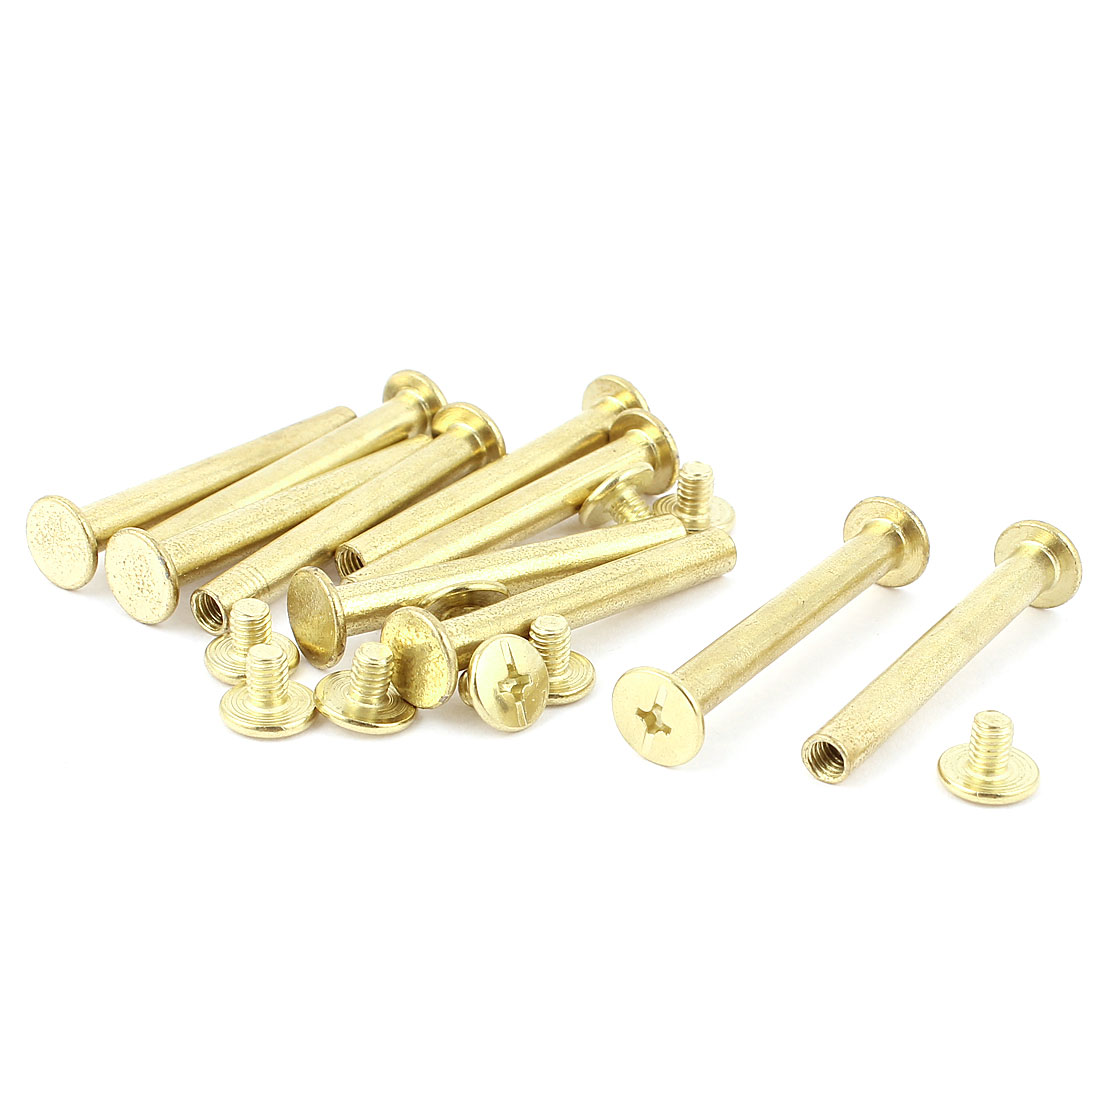 10pcs 5mmx40mm Brass Plated Binding Chicago Screw Post for Album Scrapbook